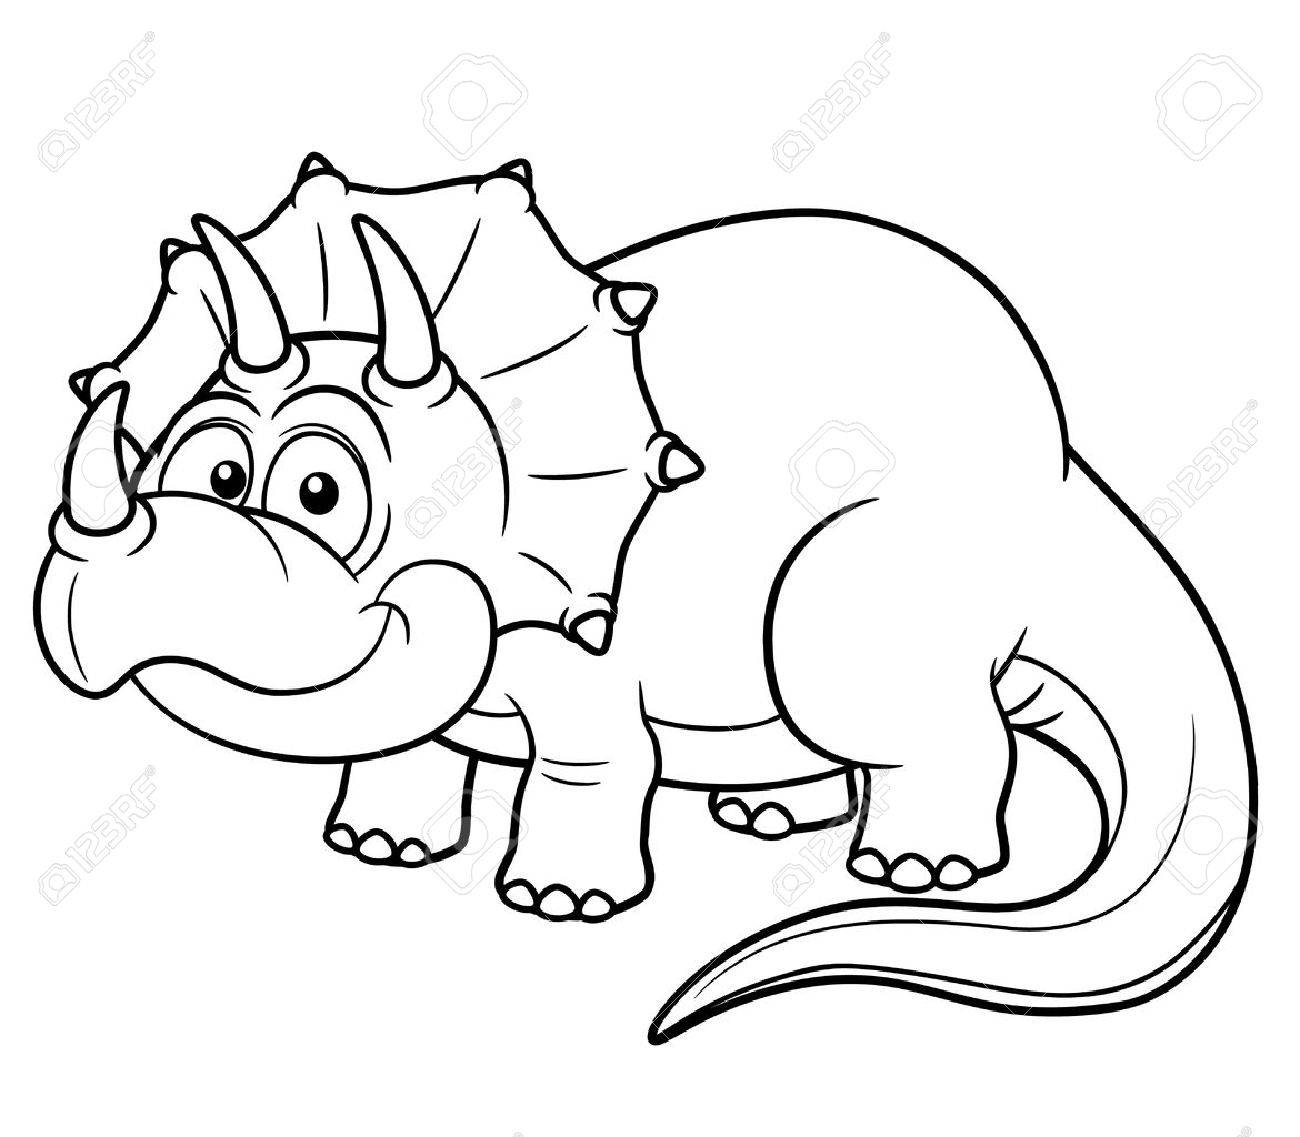 Emejing Dinosaur Coloring Book Contemporary - New Coloring Pages ...